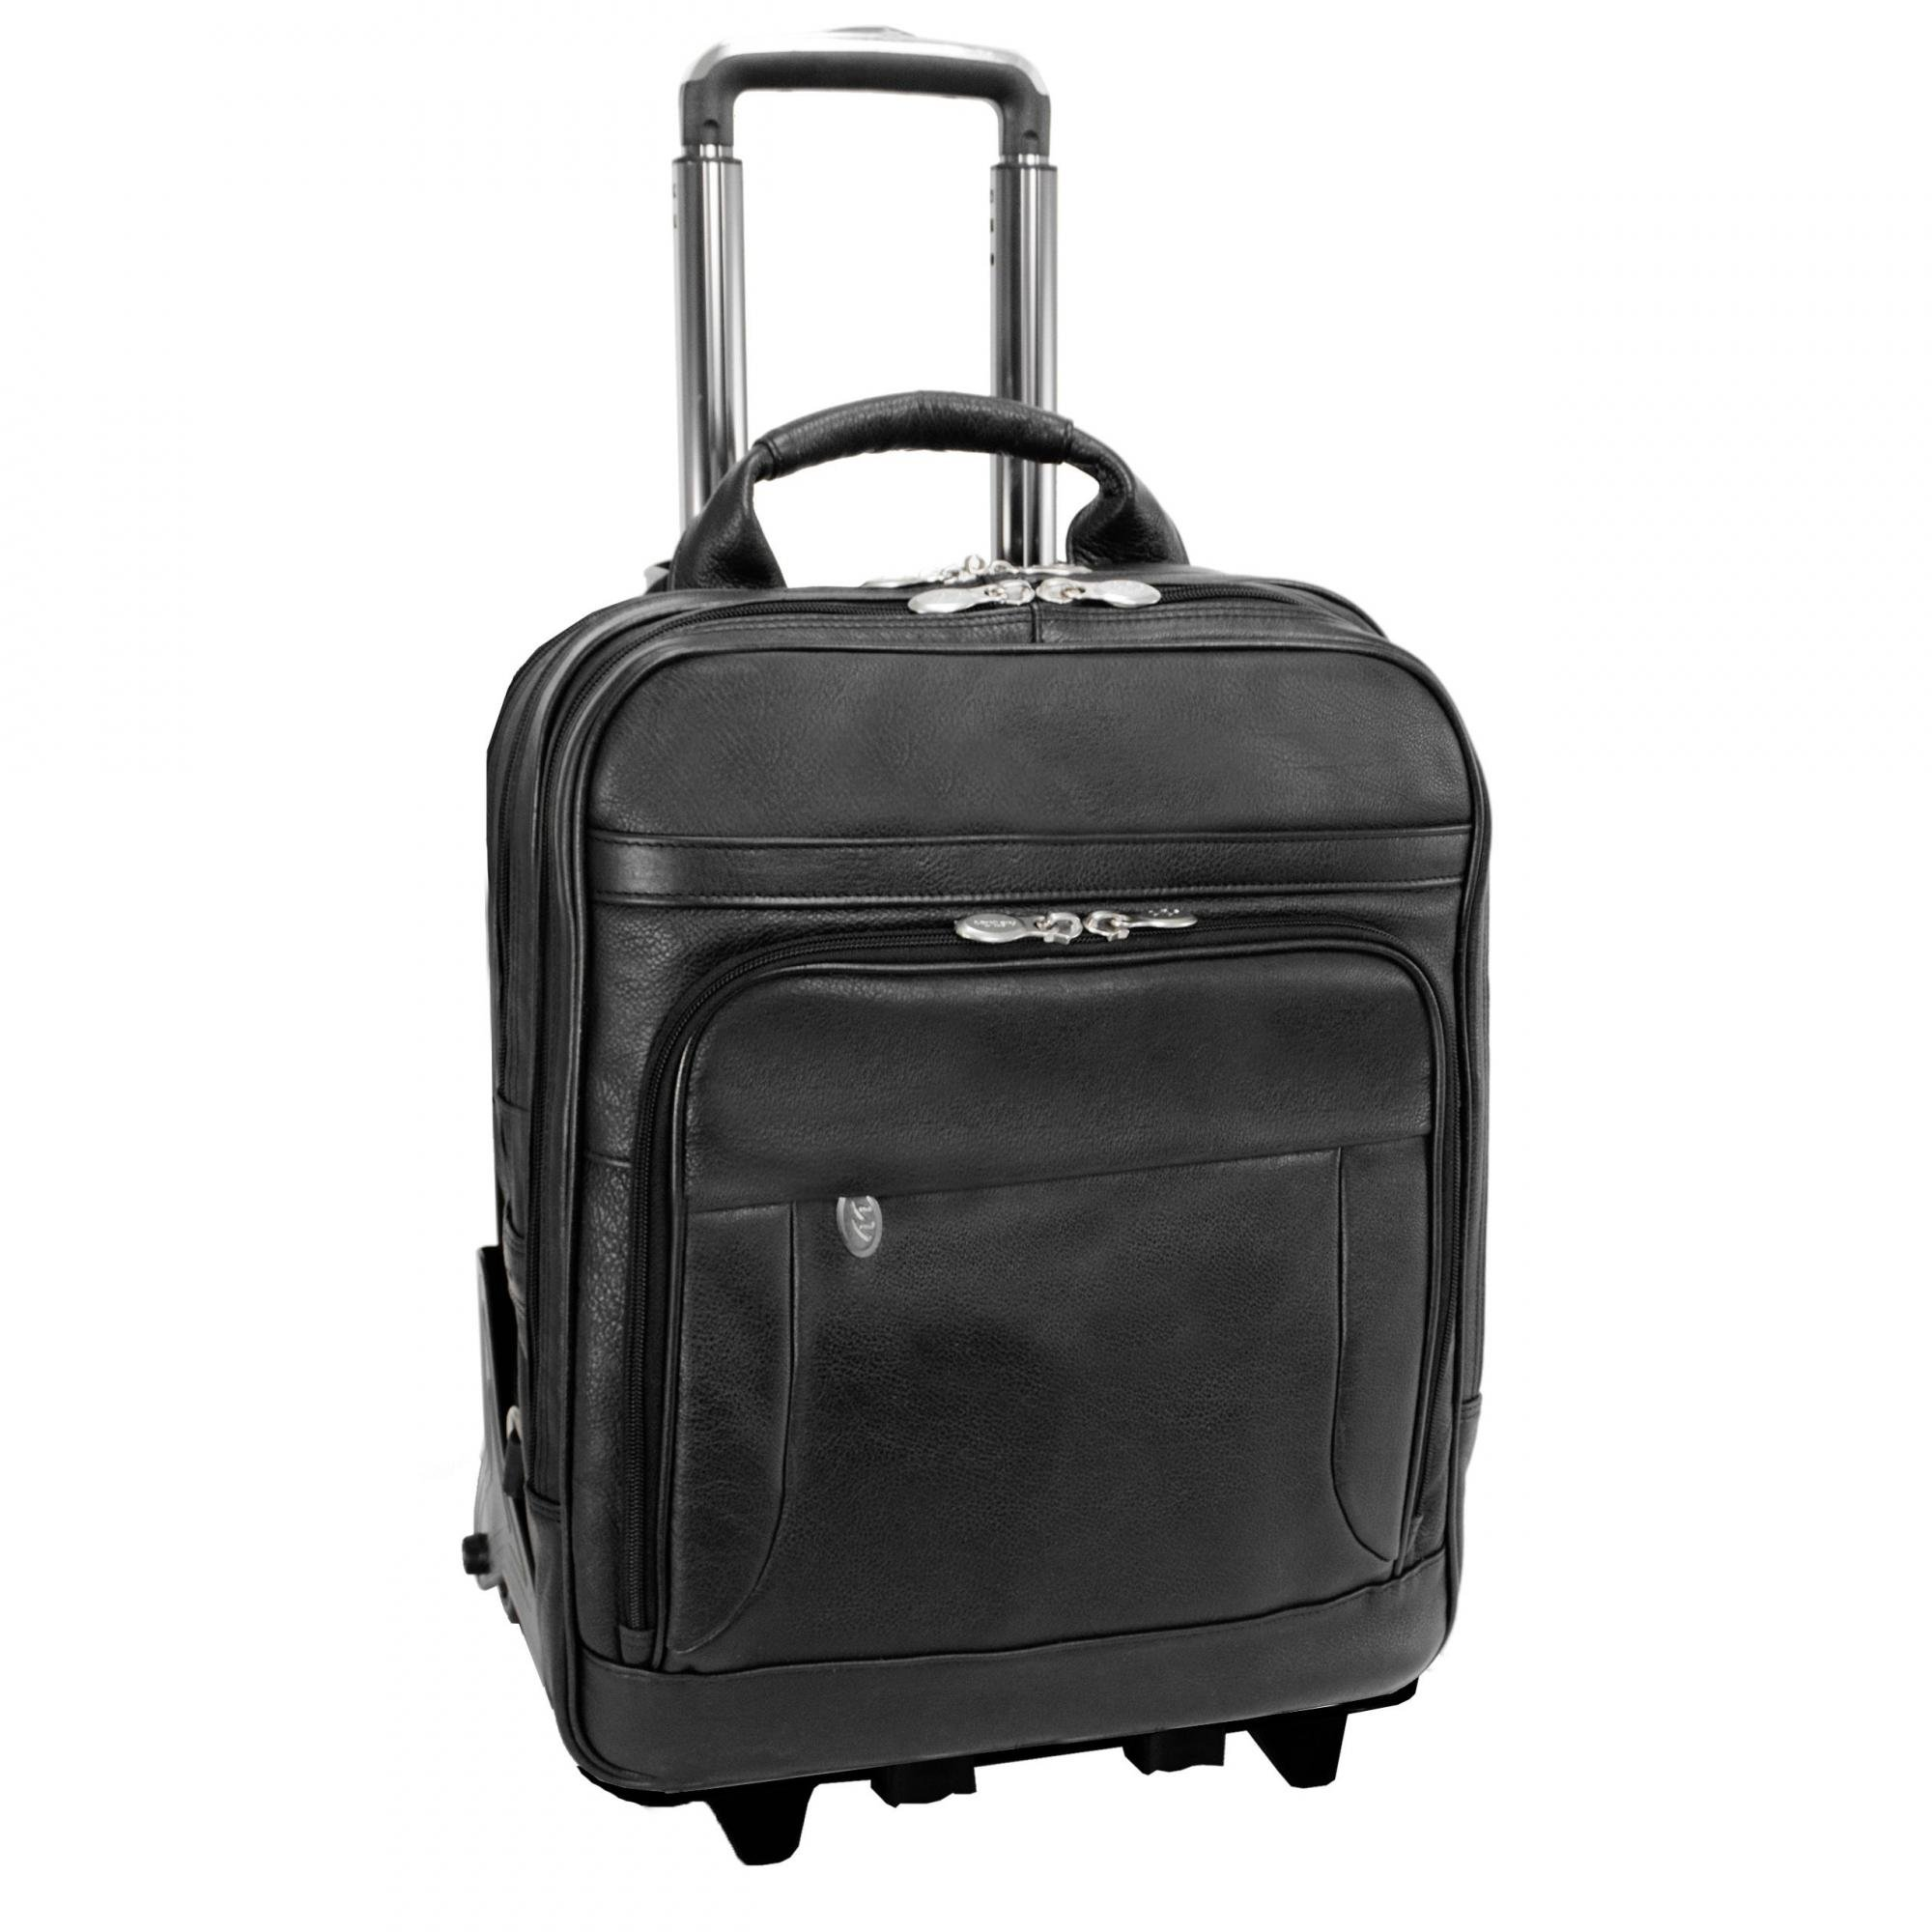 Mcklein USA Wicker Park Backpack for up to 15.6'' Laptops (47195)